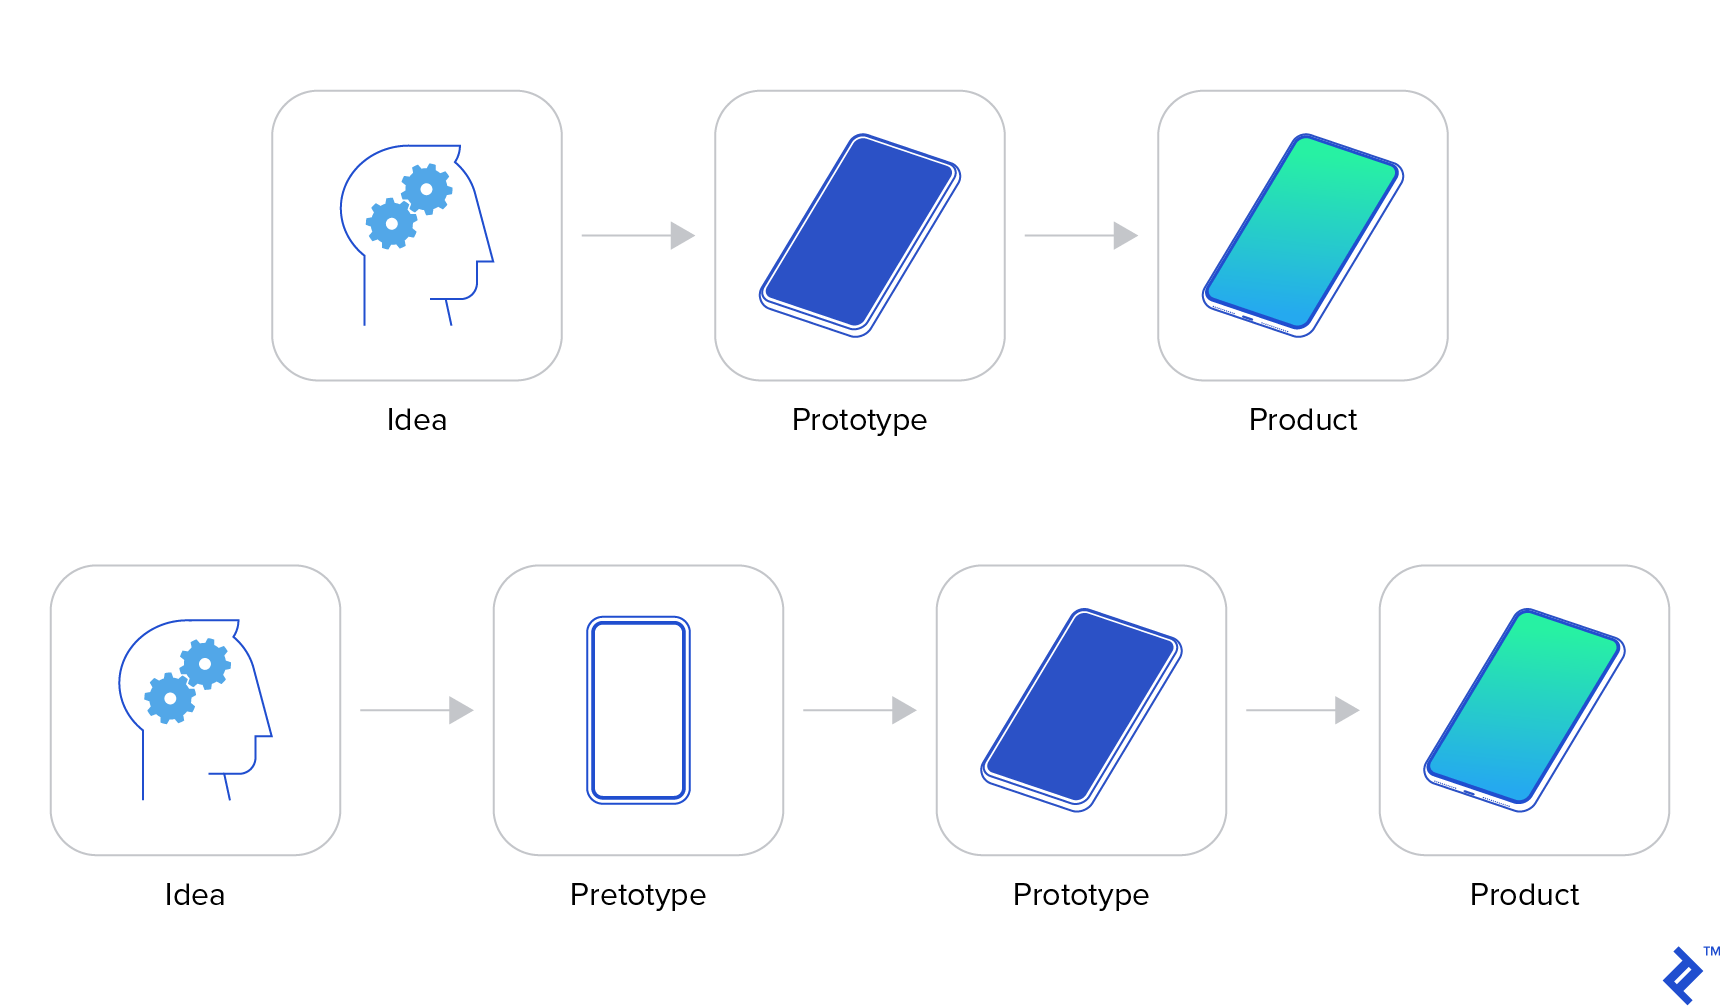 Differences between a pretotype and prototype